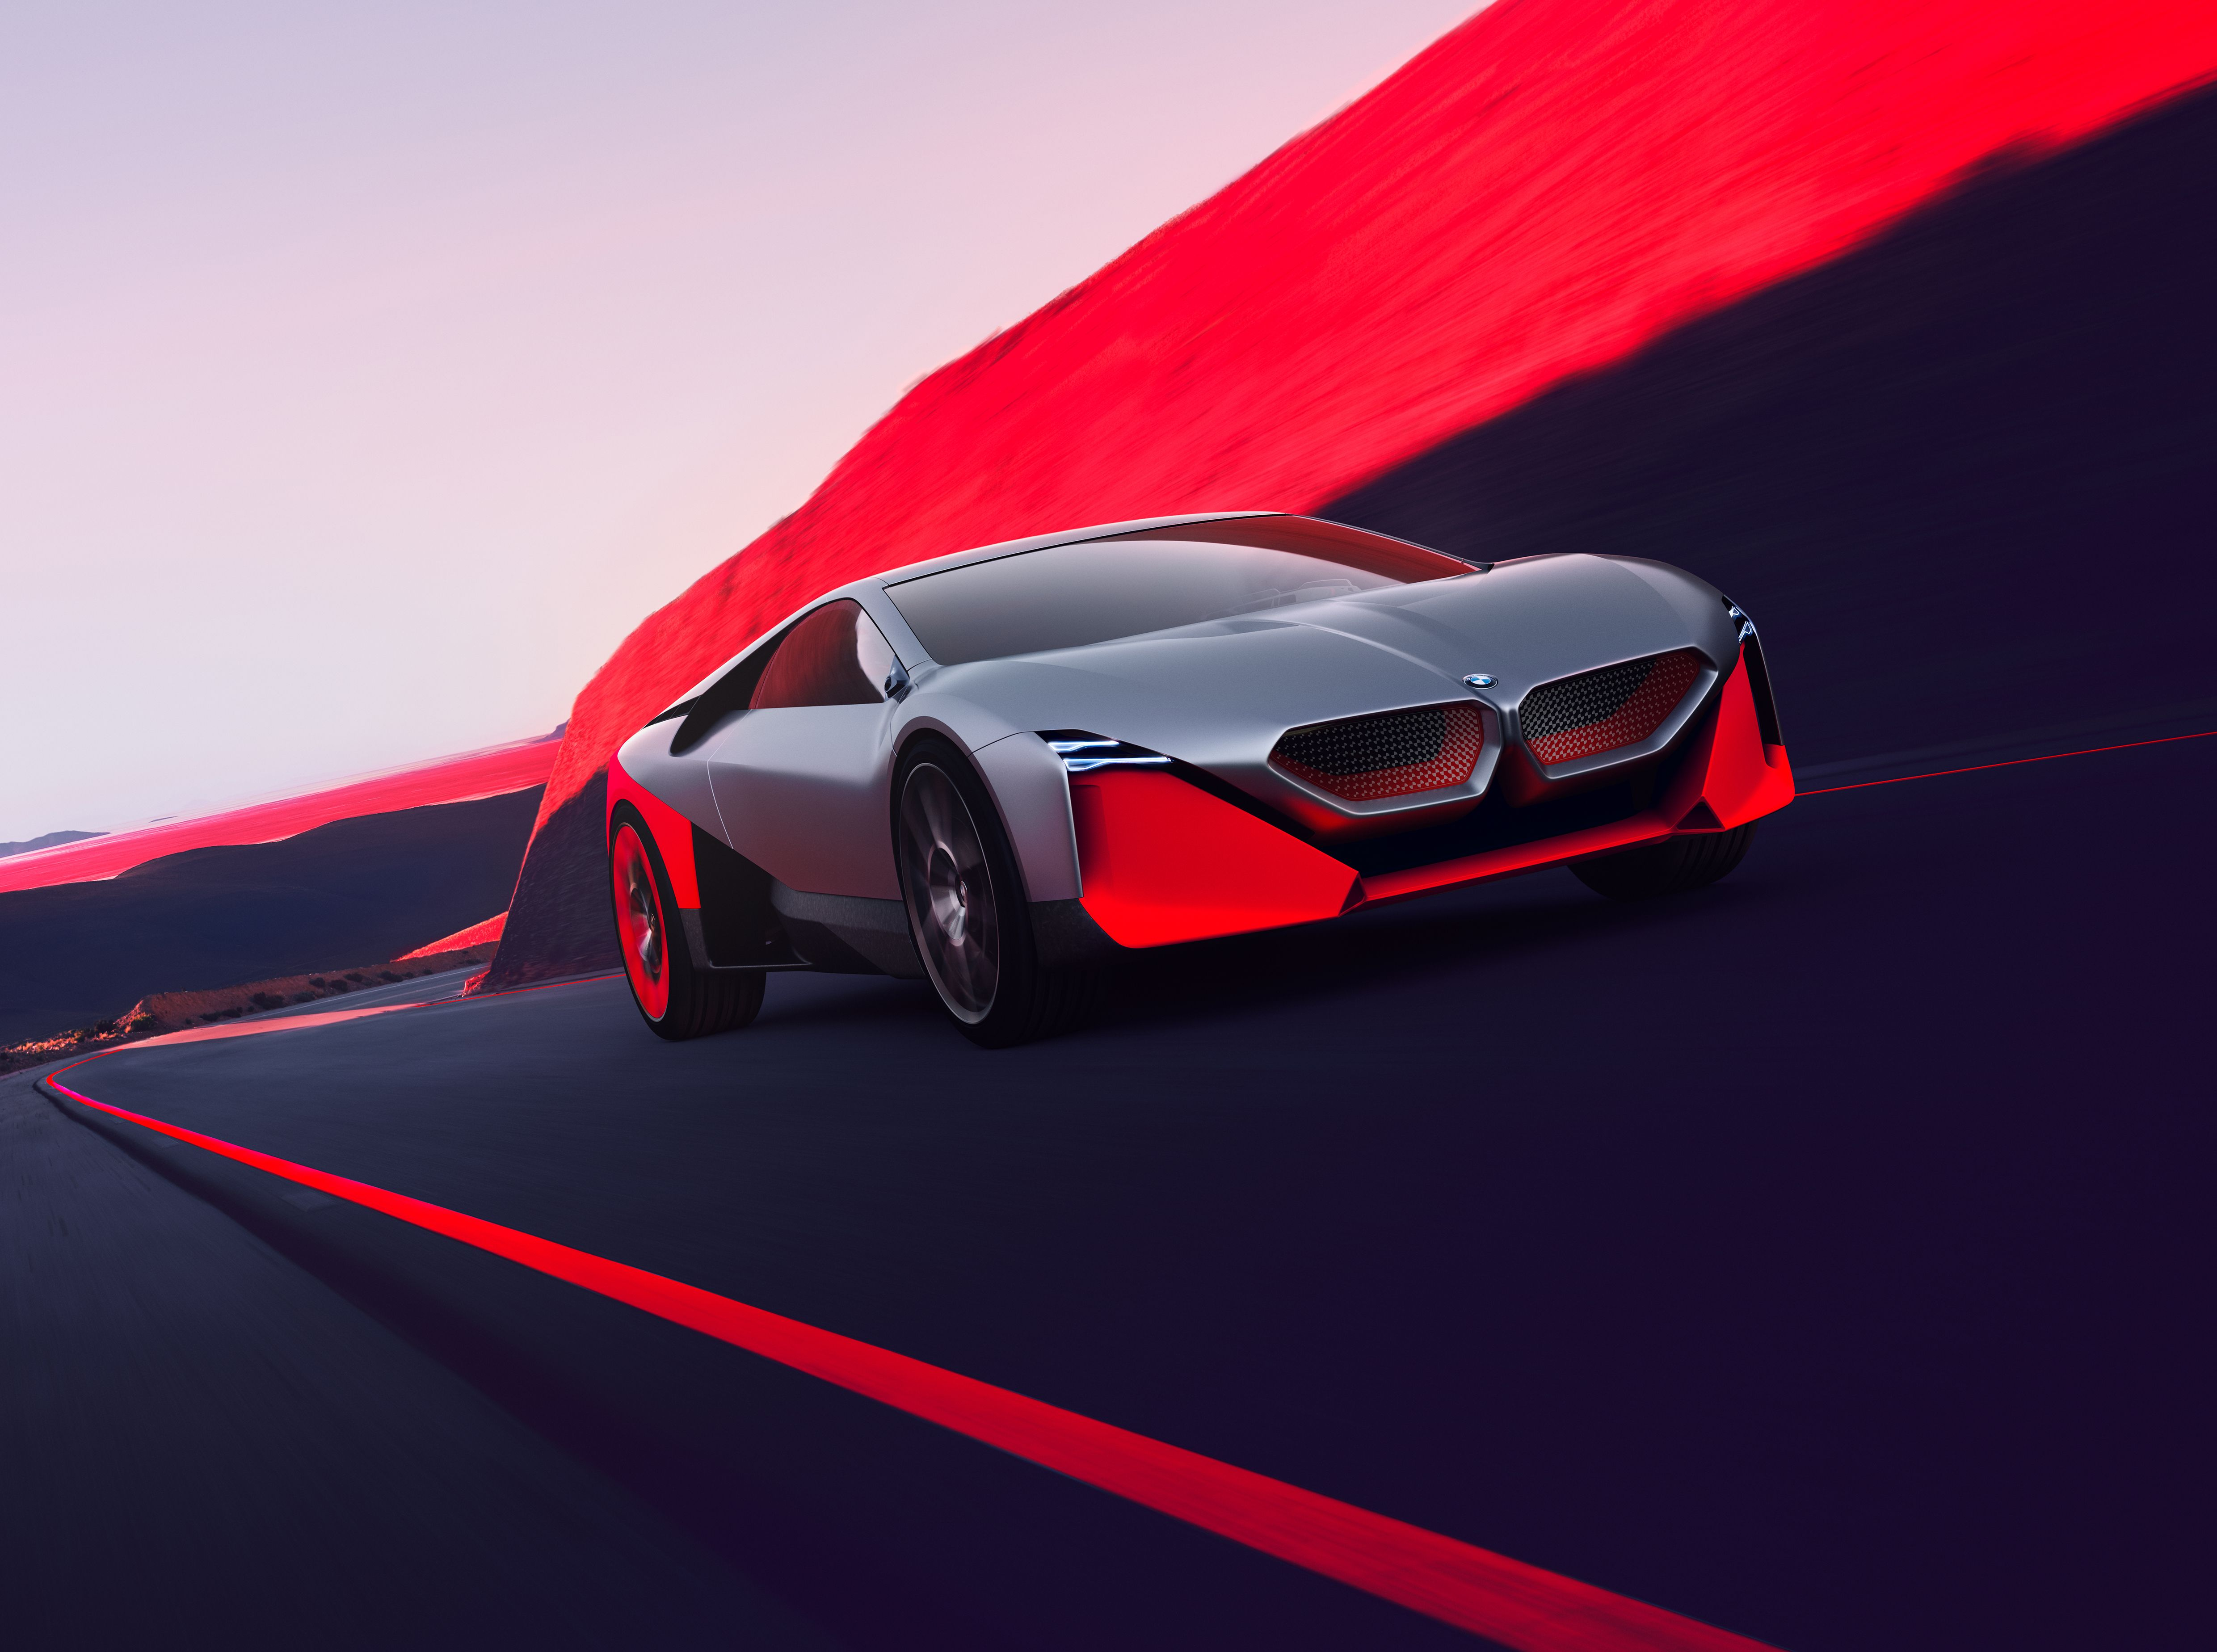 Pin By Wmk On Environment Landscape Reference Hybrid Sports Car Super Cars Concept Cars